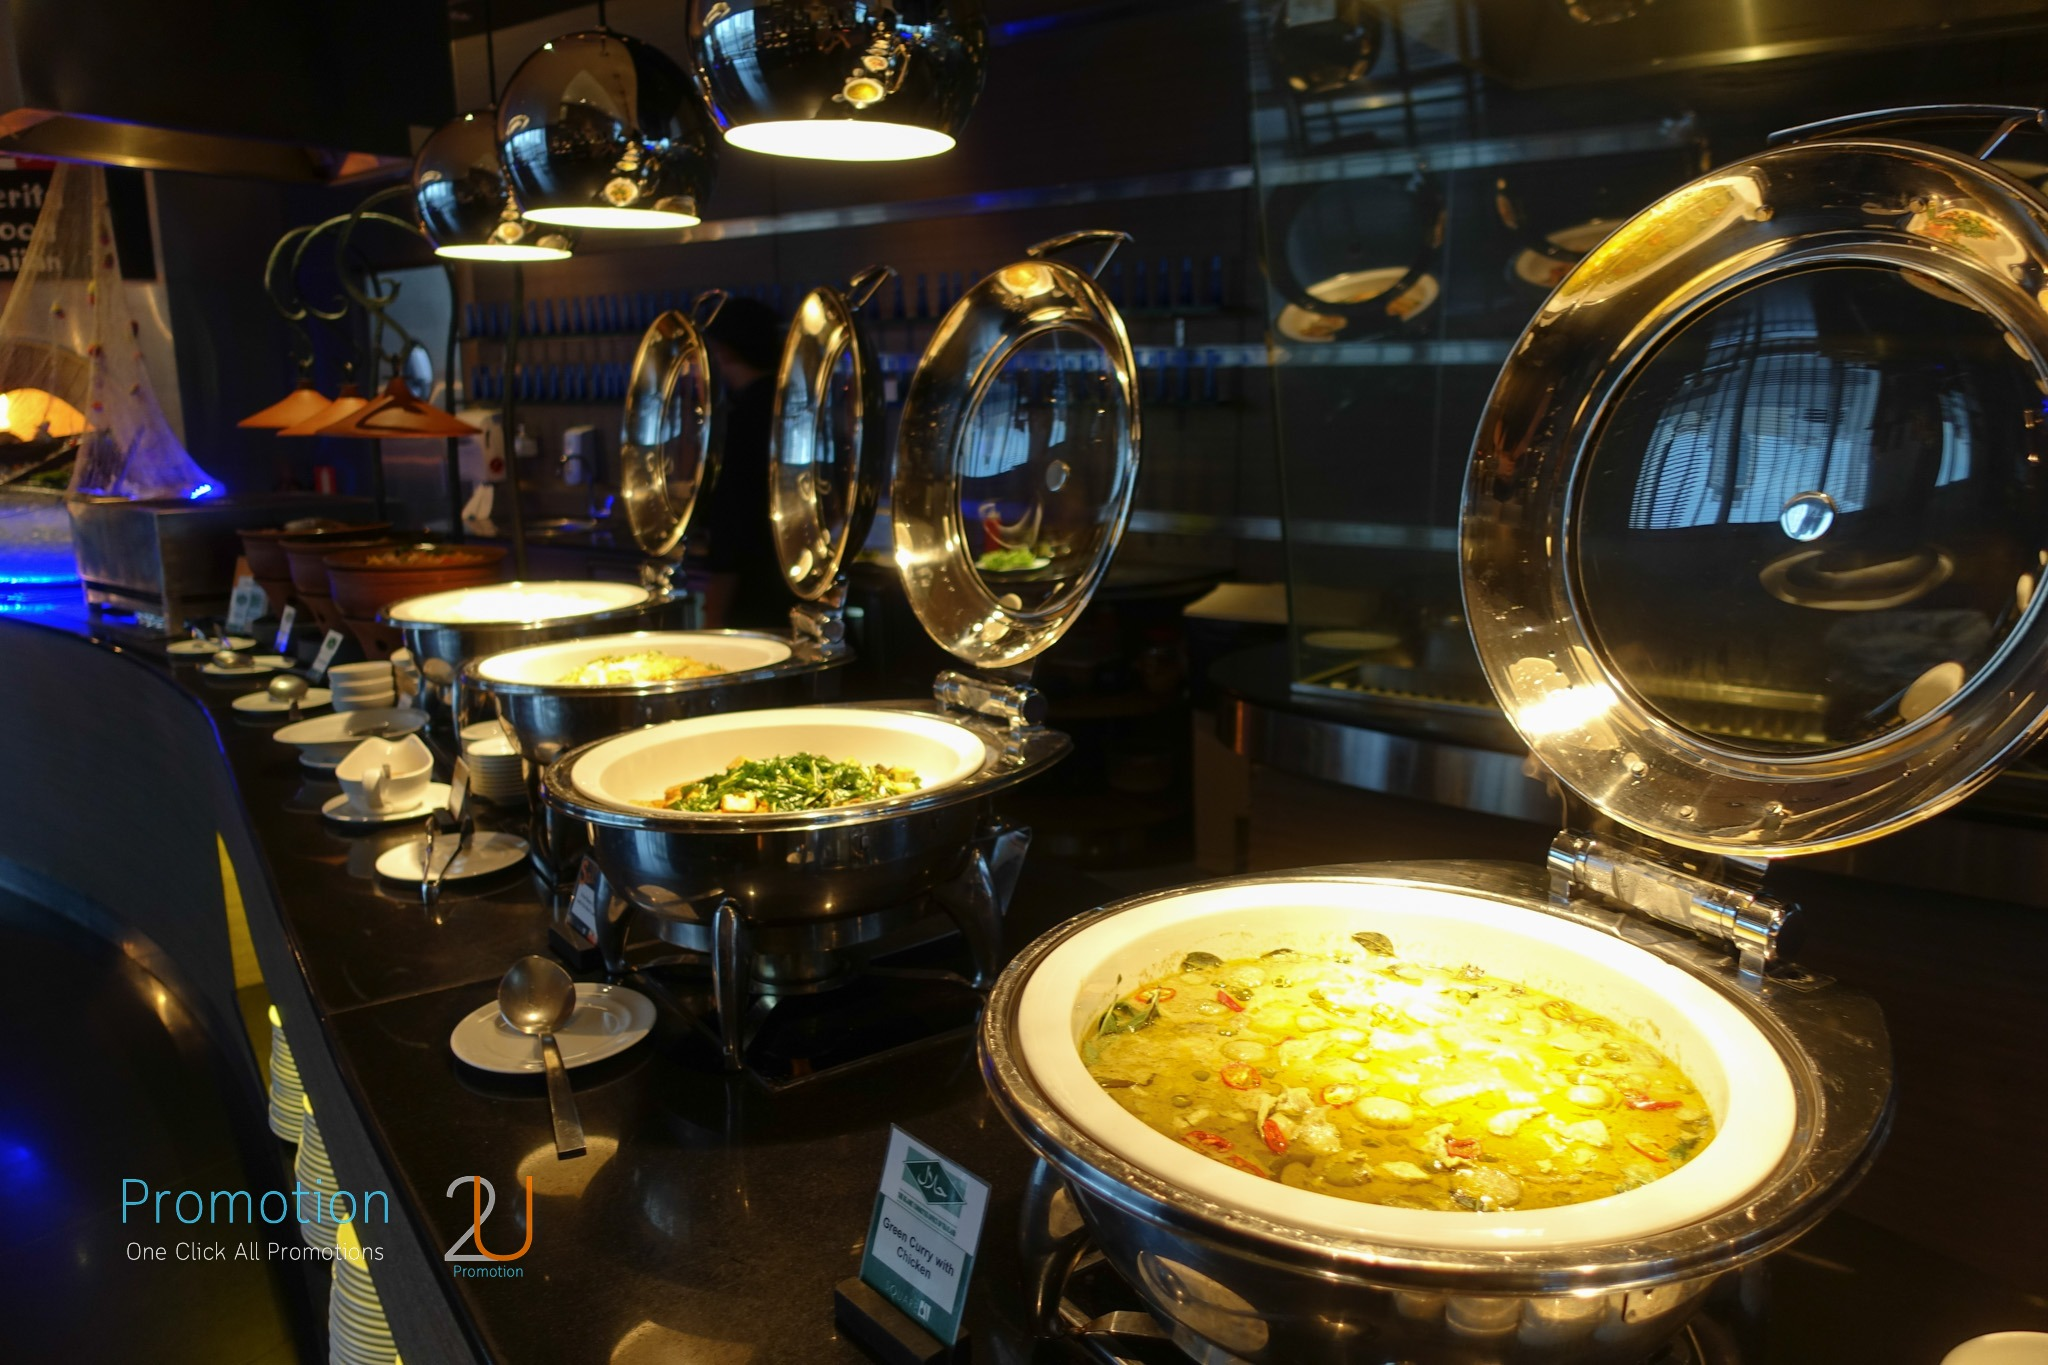 32Promotiion-Buffet-Come-2-pay-1-at-The--Squaer-Novotel-Pleonjit-Bangkok